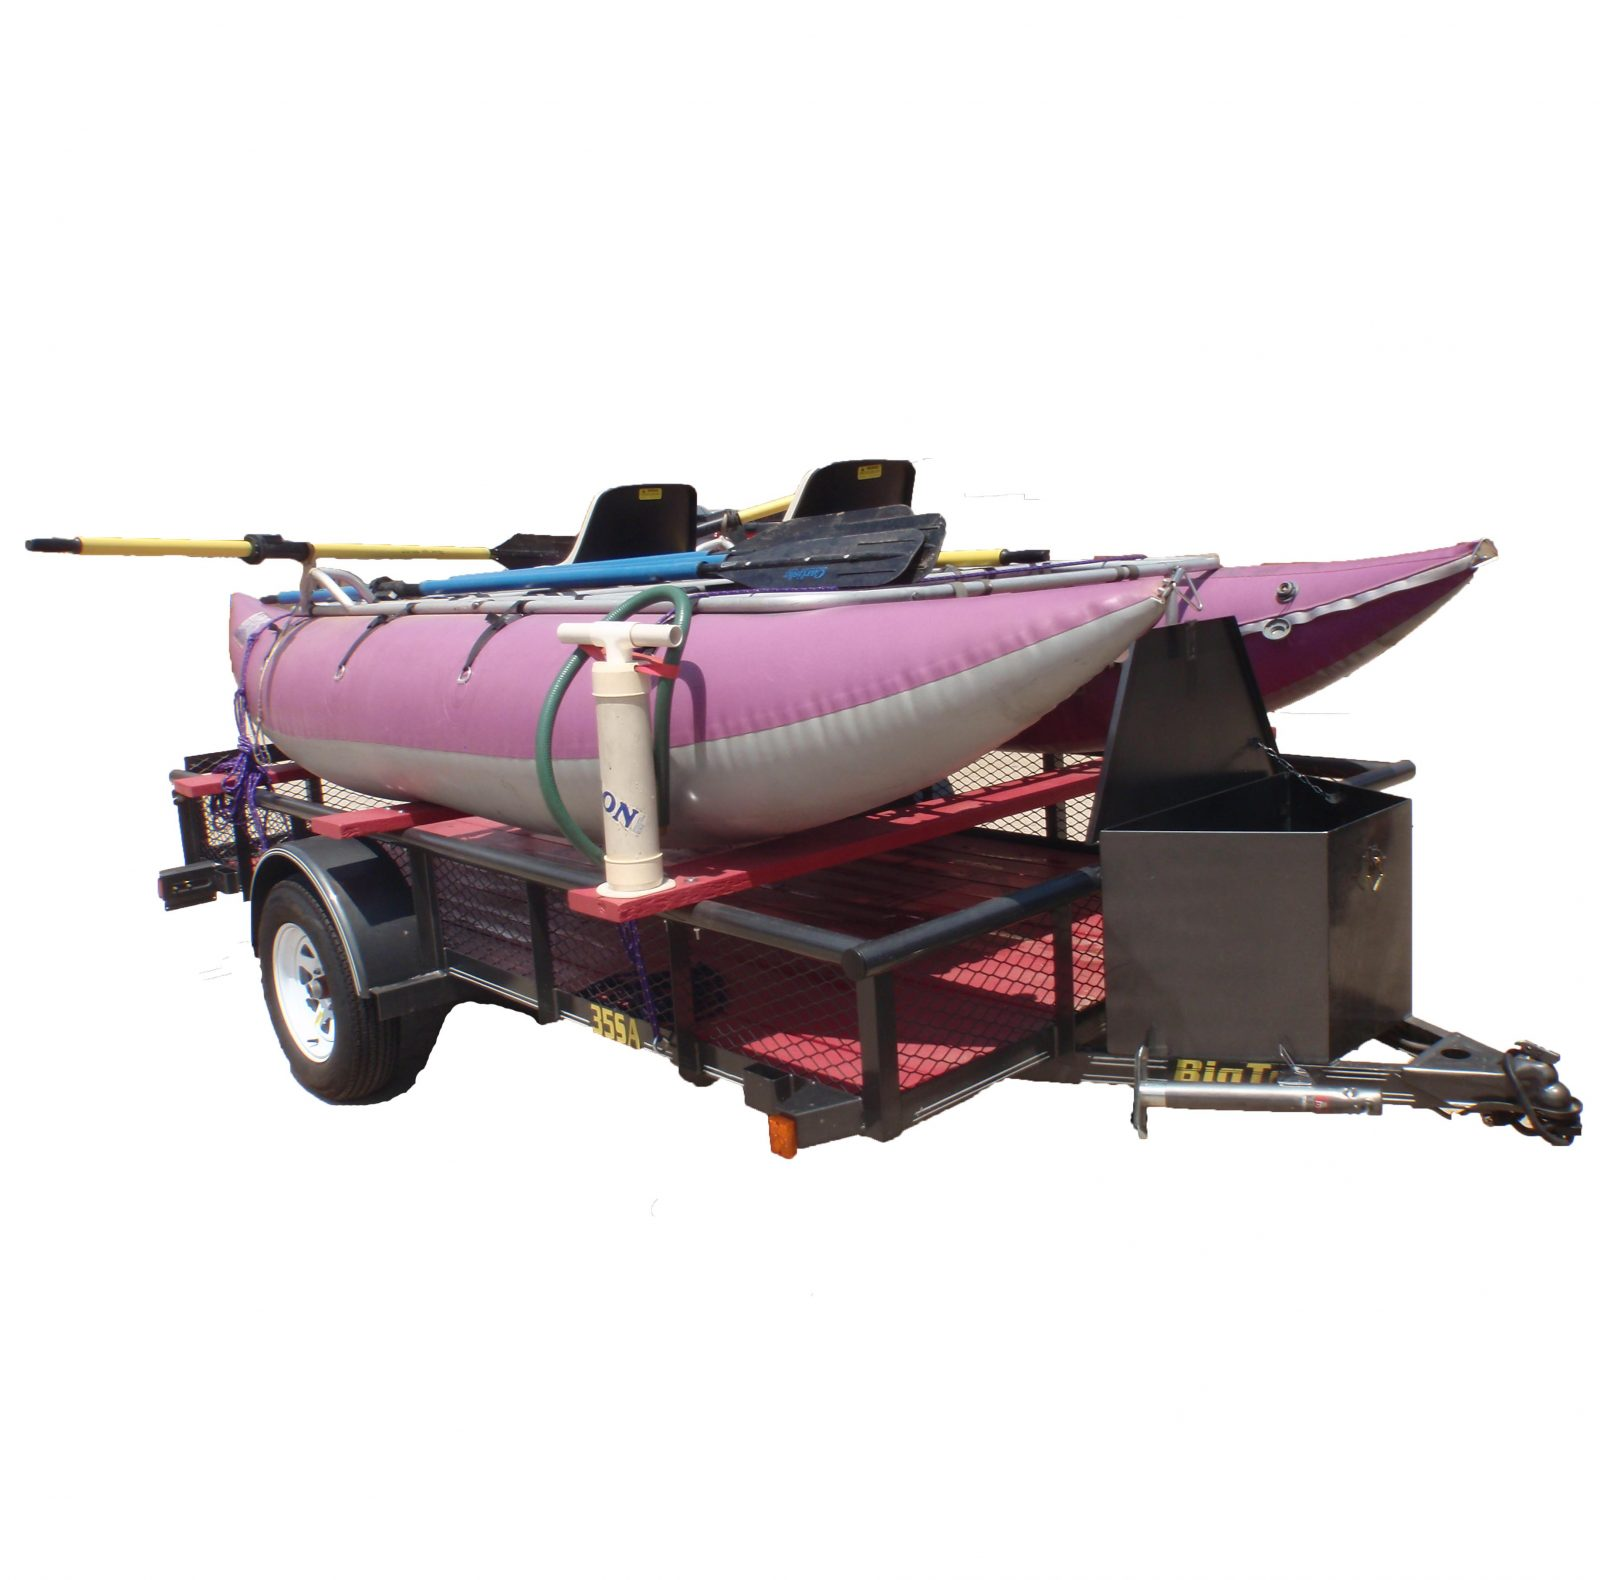 Used // AIRE Cataraft 14' & Big Tex Trailer